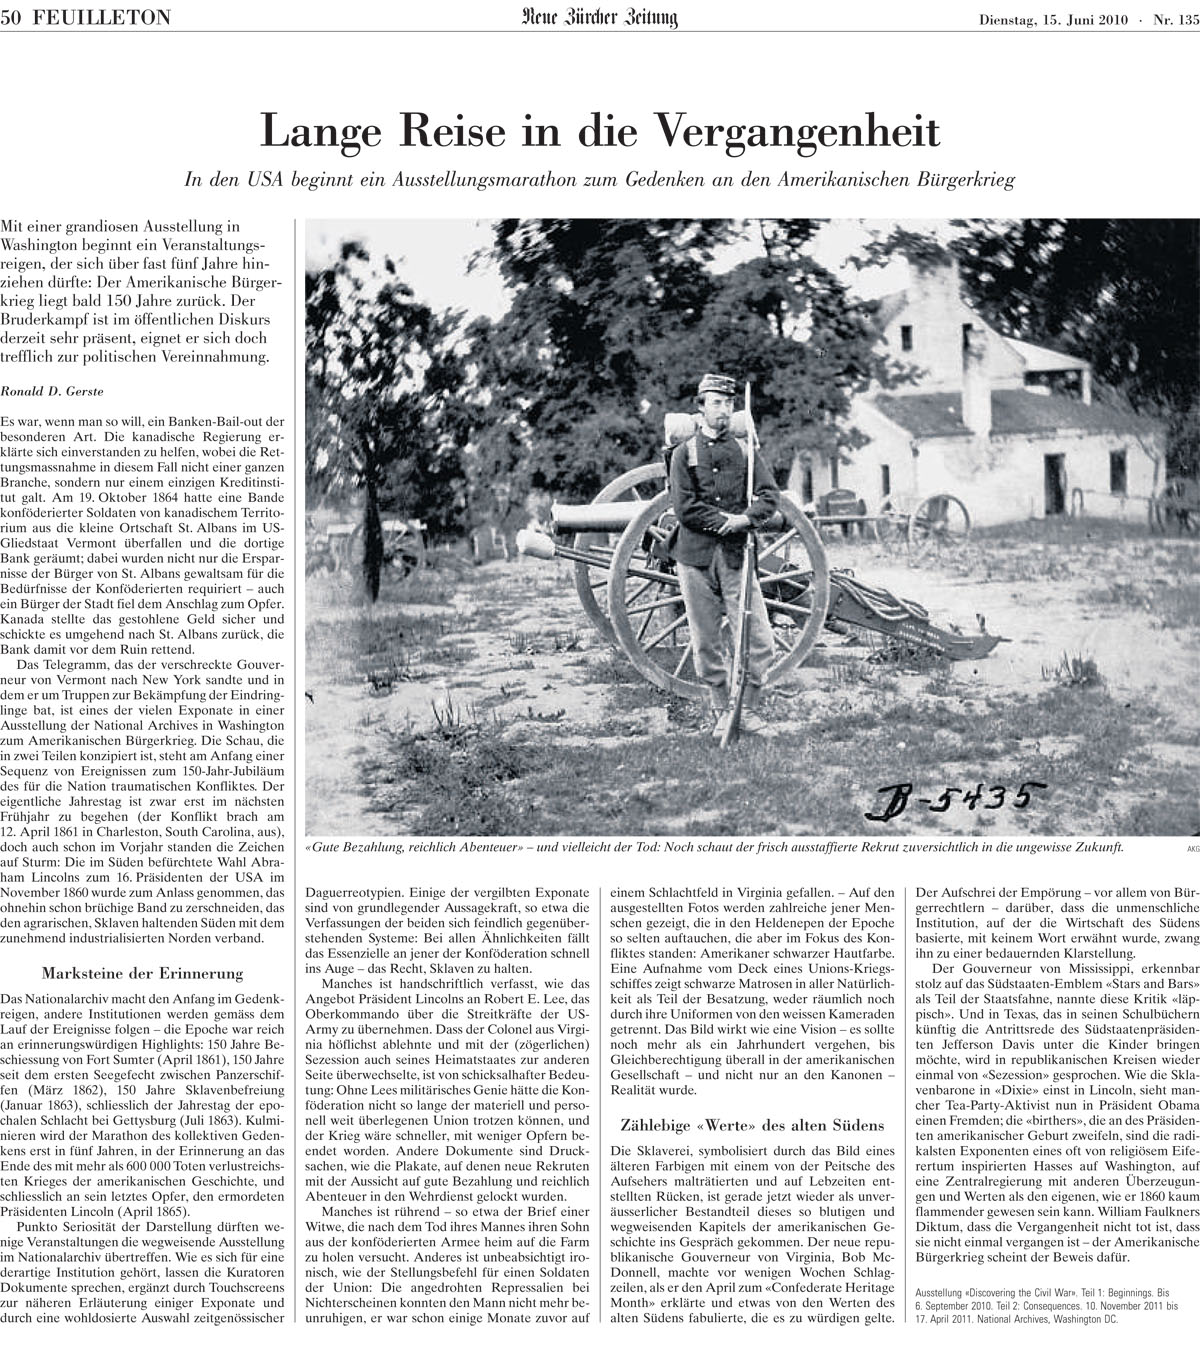 This story on Discovering the Civil War appeared on the front cover of the Culture section of Switzerland's largest newspaper